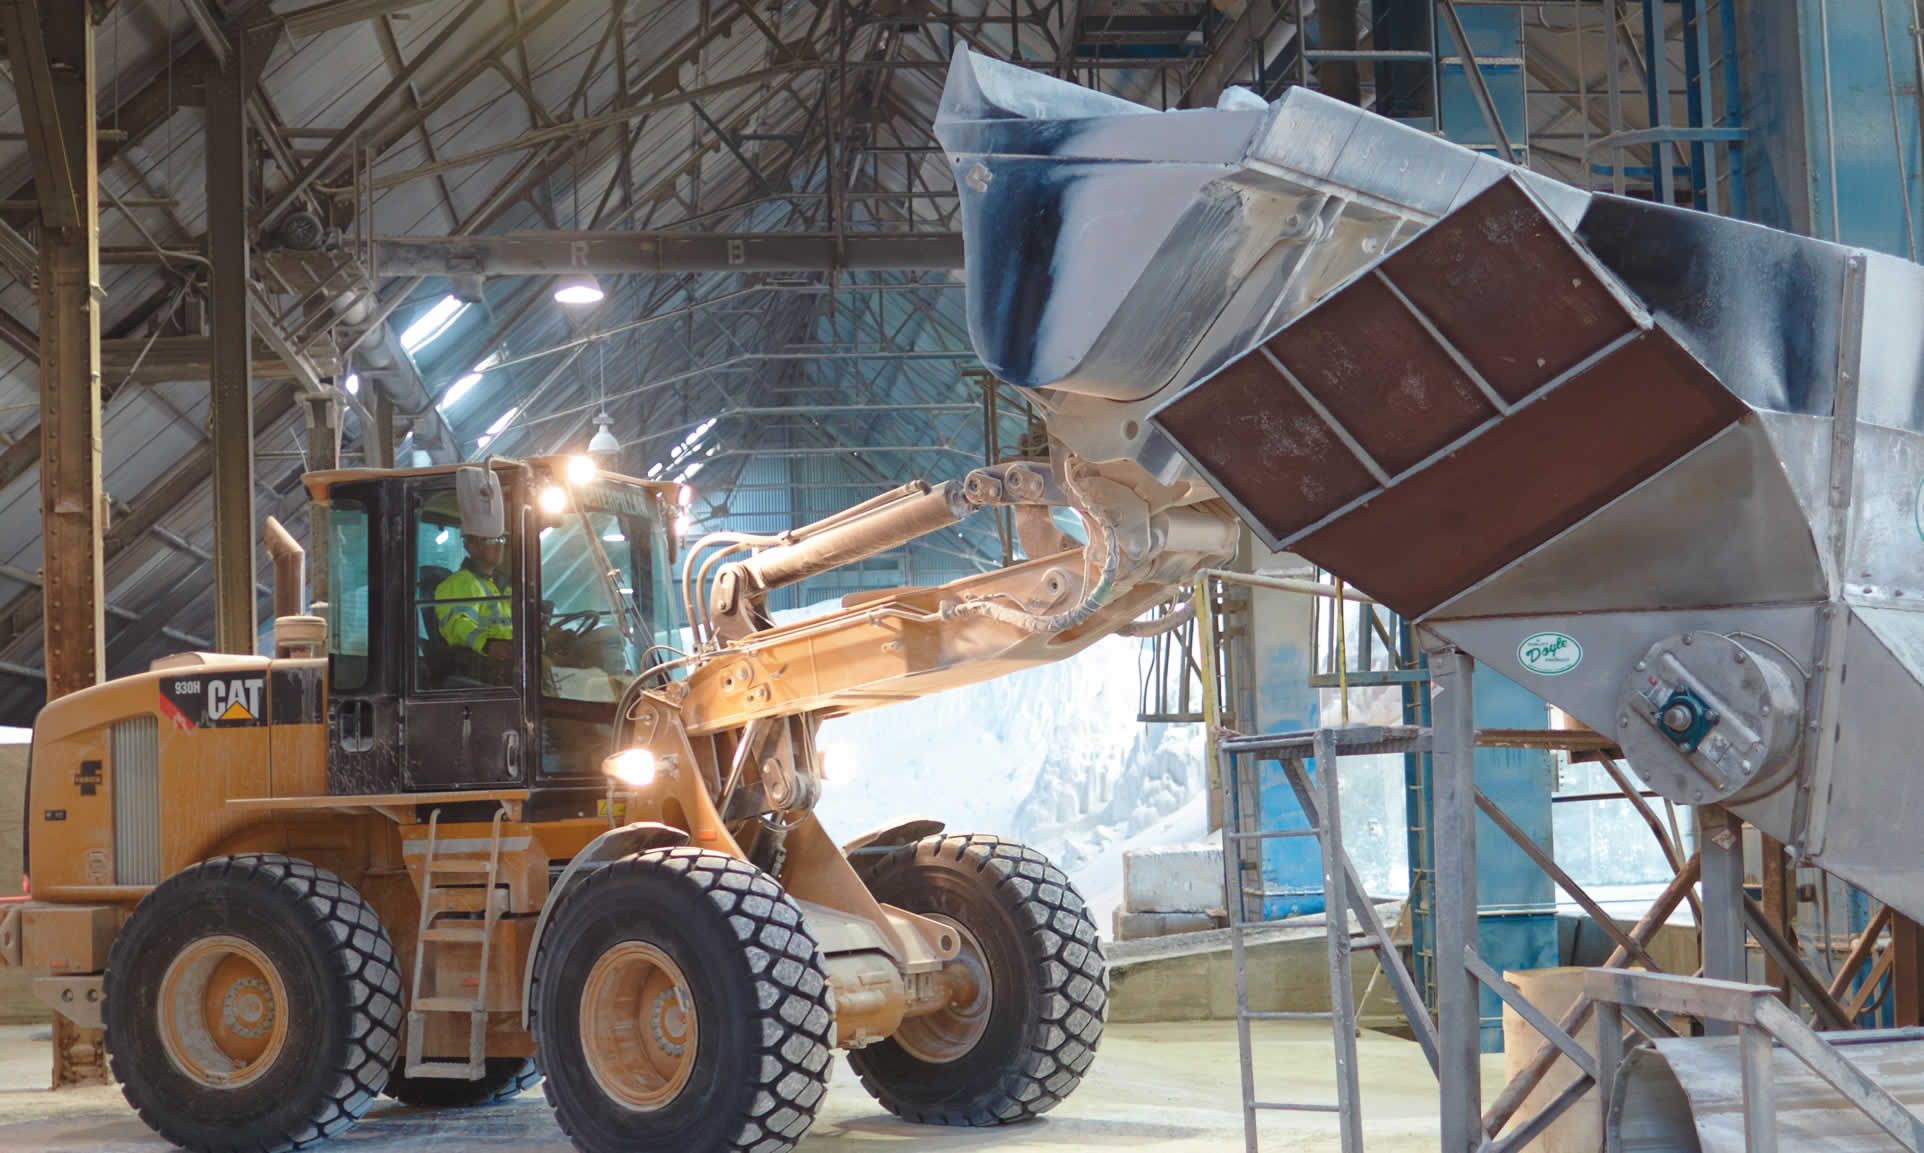 Photo of bulk product being loaded into a hopper for filtering